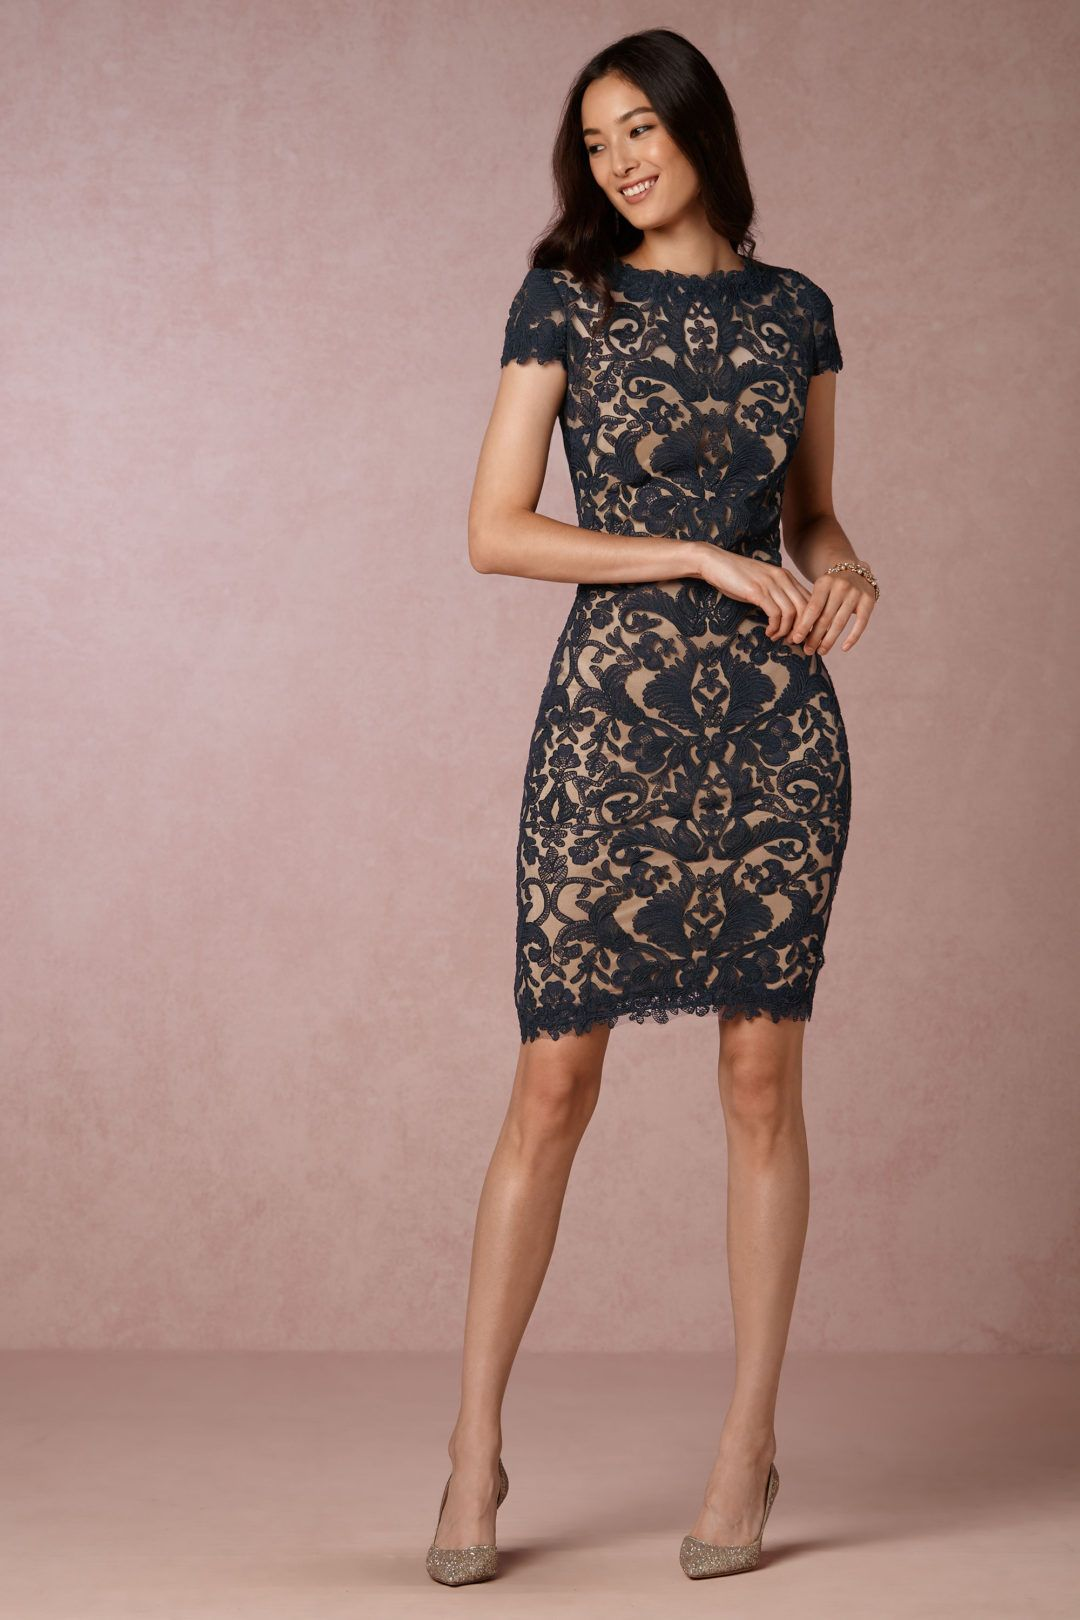 a388149692 Lace sheath dress in navy blue cocktail dress 2016 wedding guest attire for  autumn